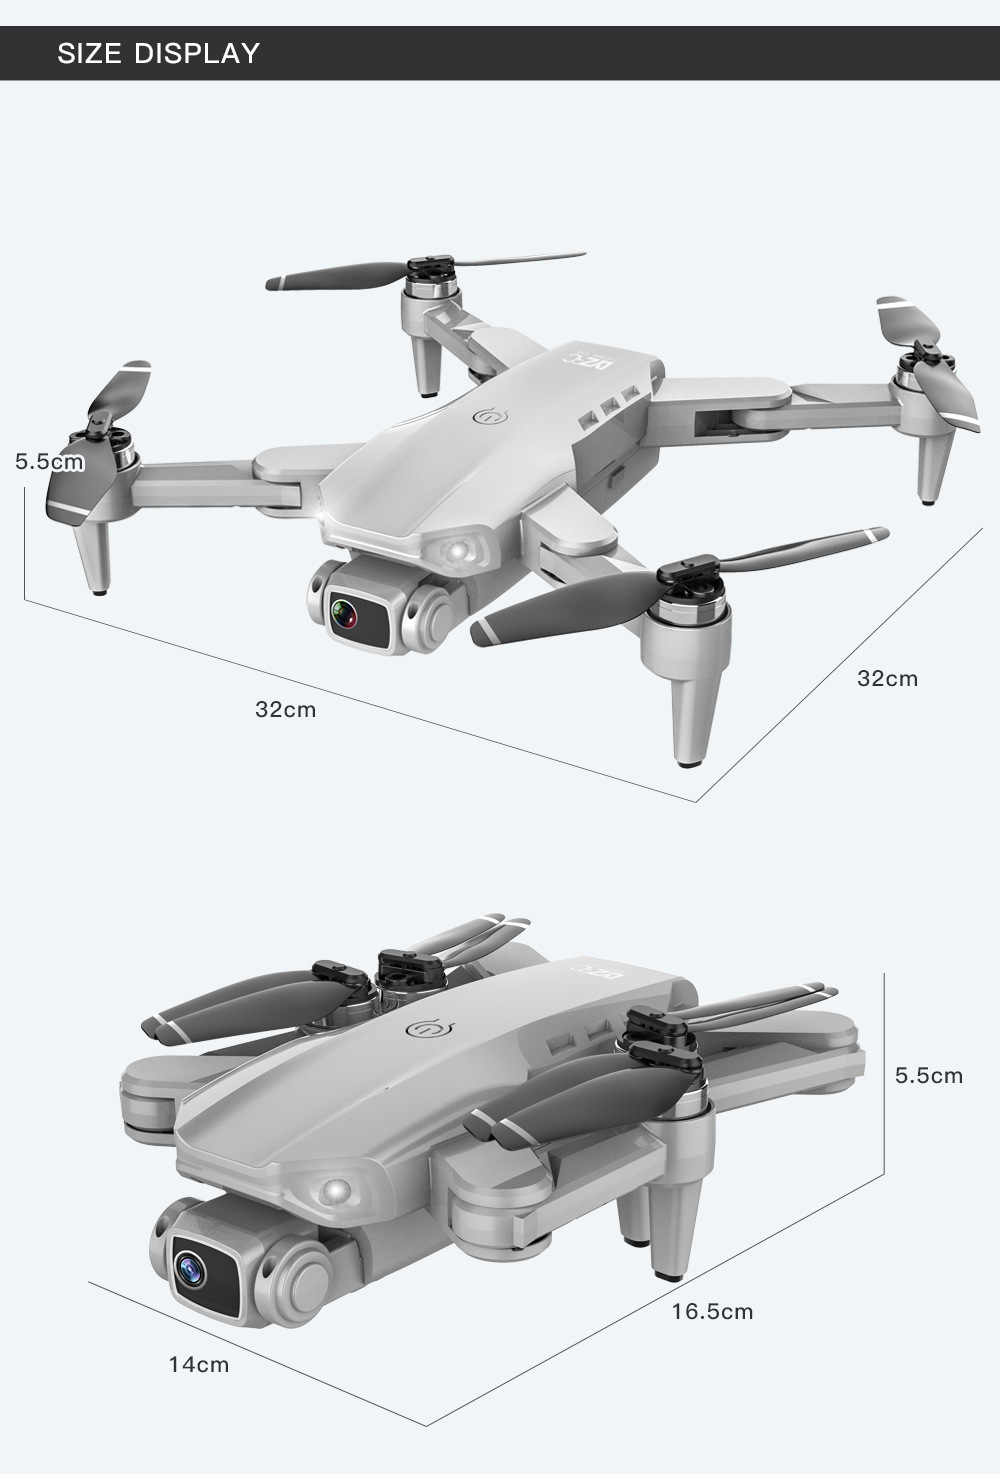 Hb2ff396ea2c84d8a9b43a733ed3aecb1j - L900 Pro Drones 4K HD Dual Camera GPS 5G WIFI FPV Quadcopter Brushless Motor Rc Distance 1.2km Transmission Helicopter Toys